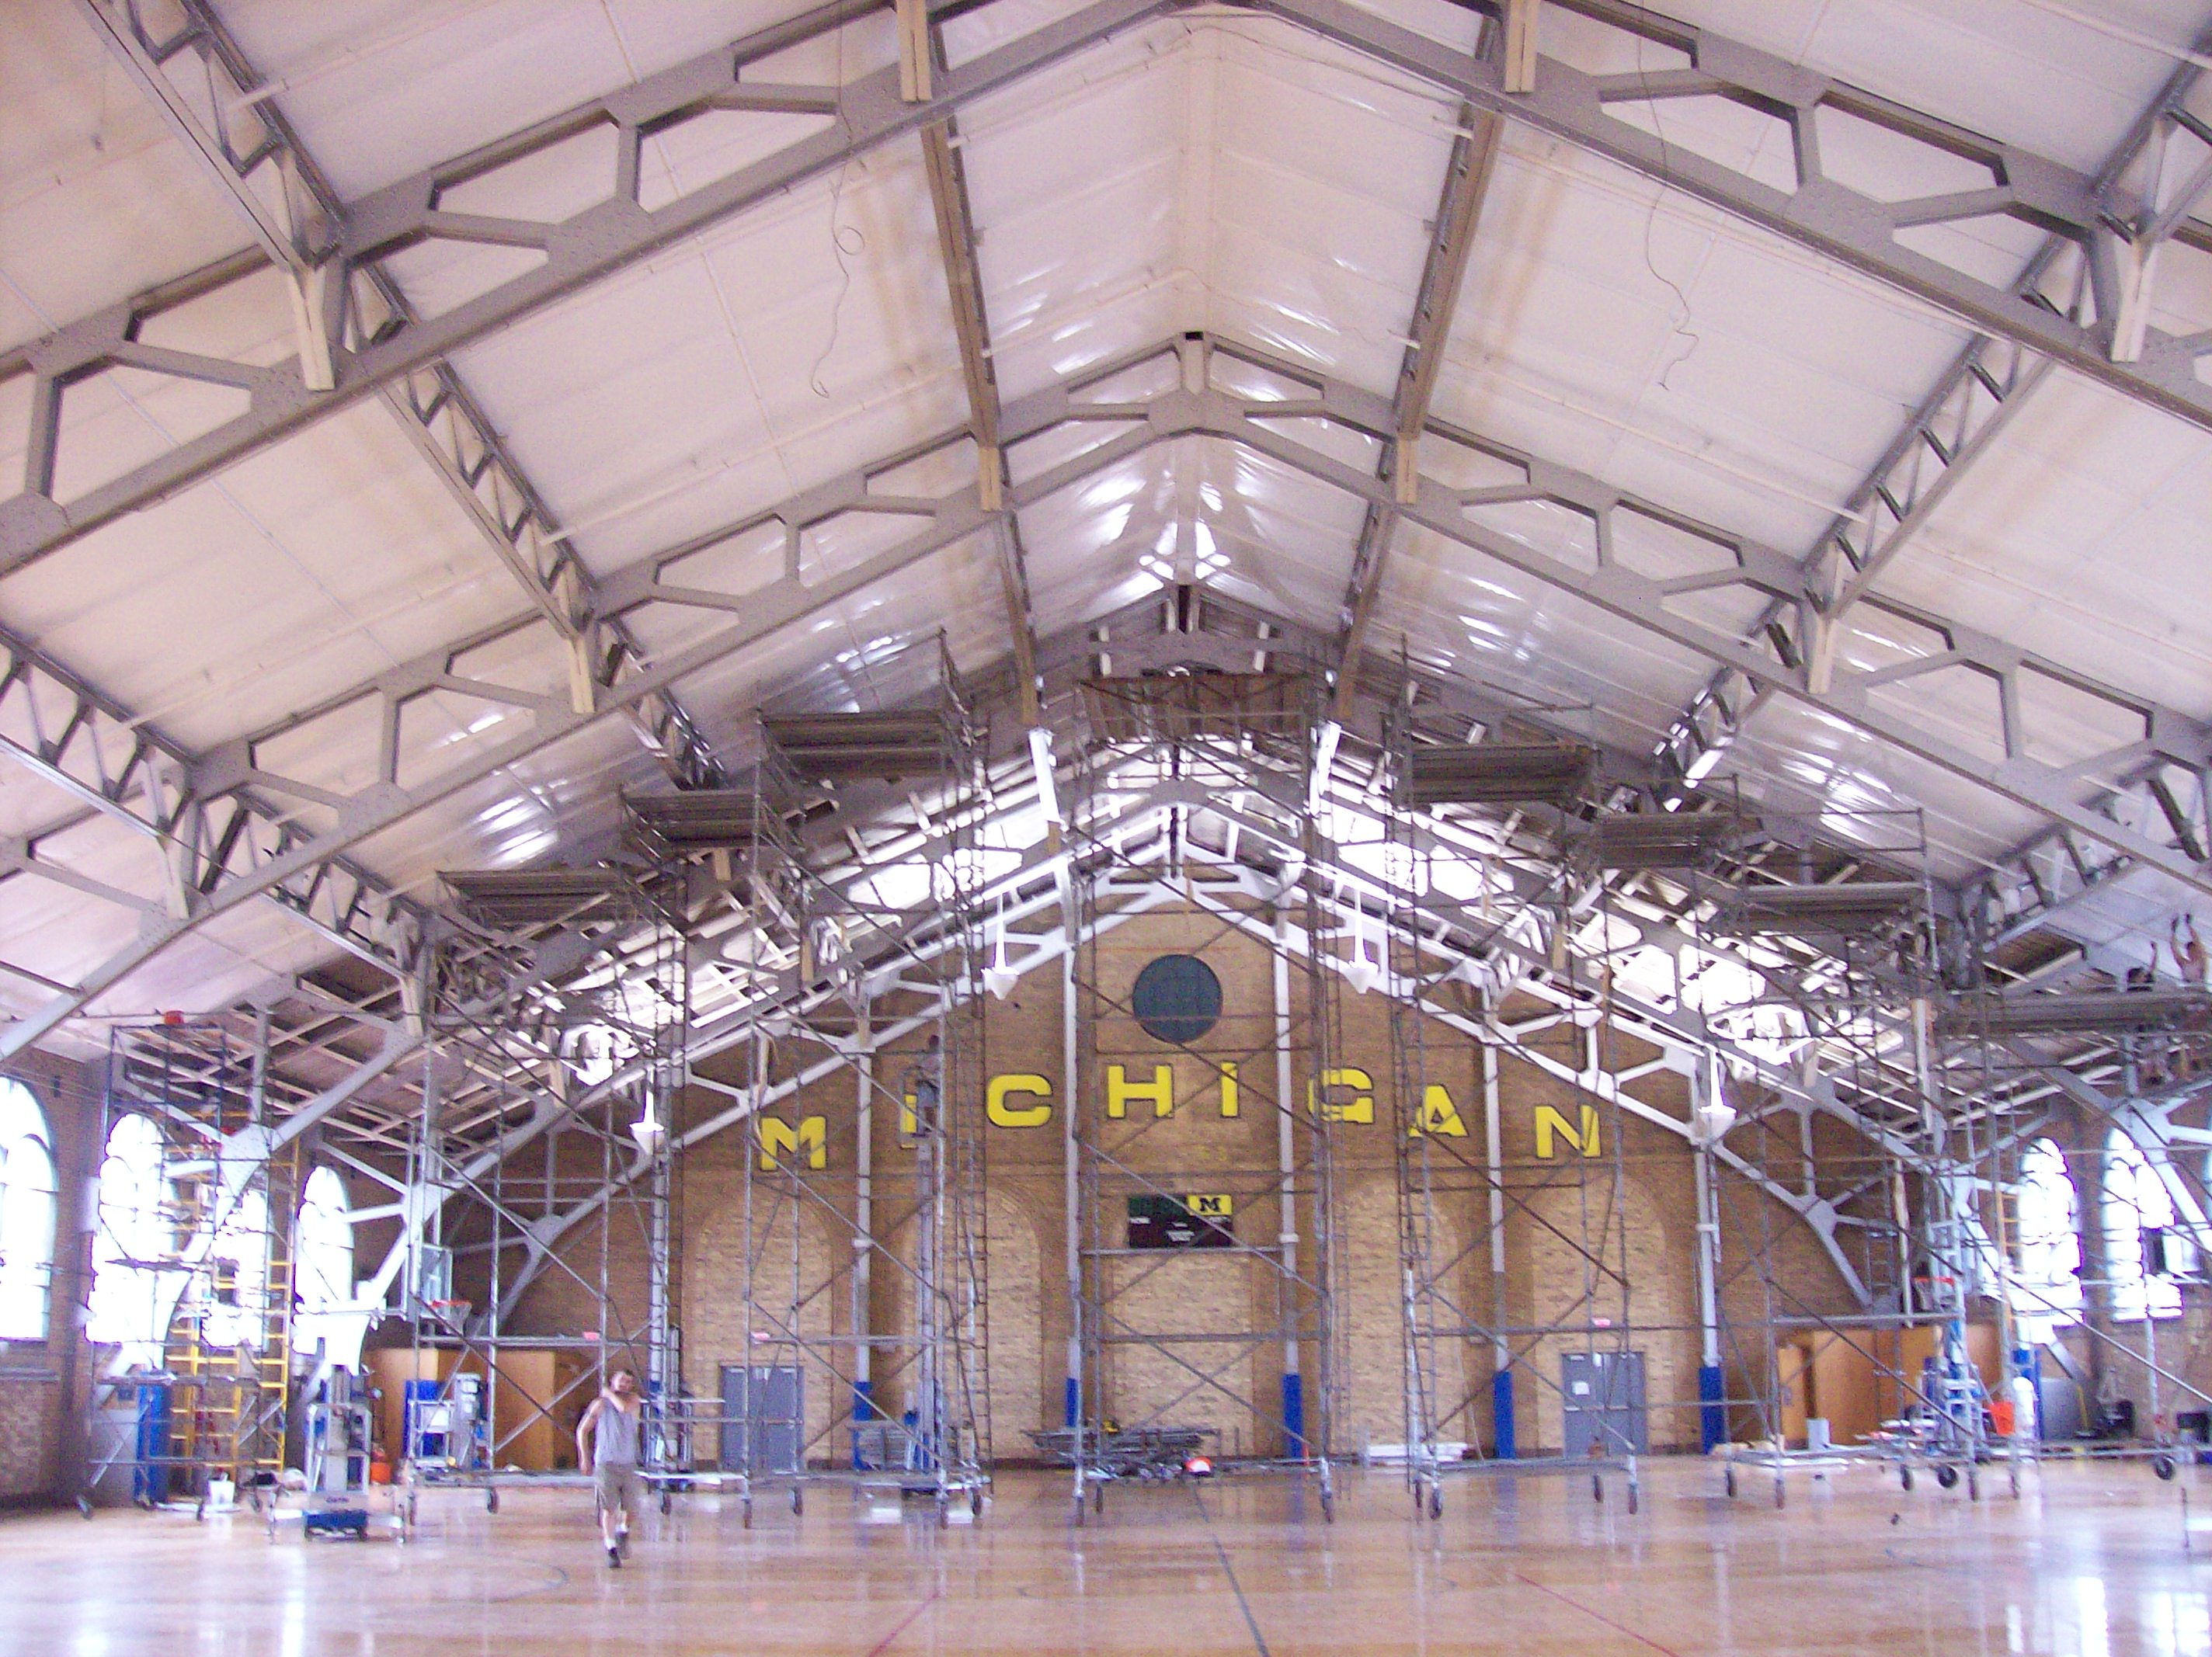 University of Michigan Basketball ROD Suspension System Installed Below Cork Ceiling